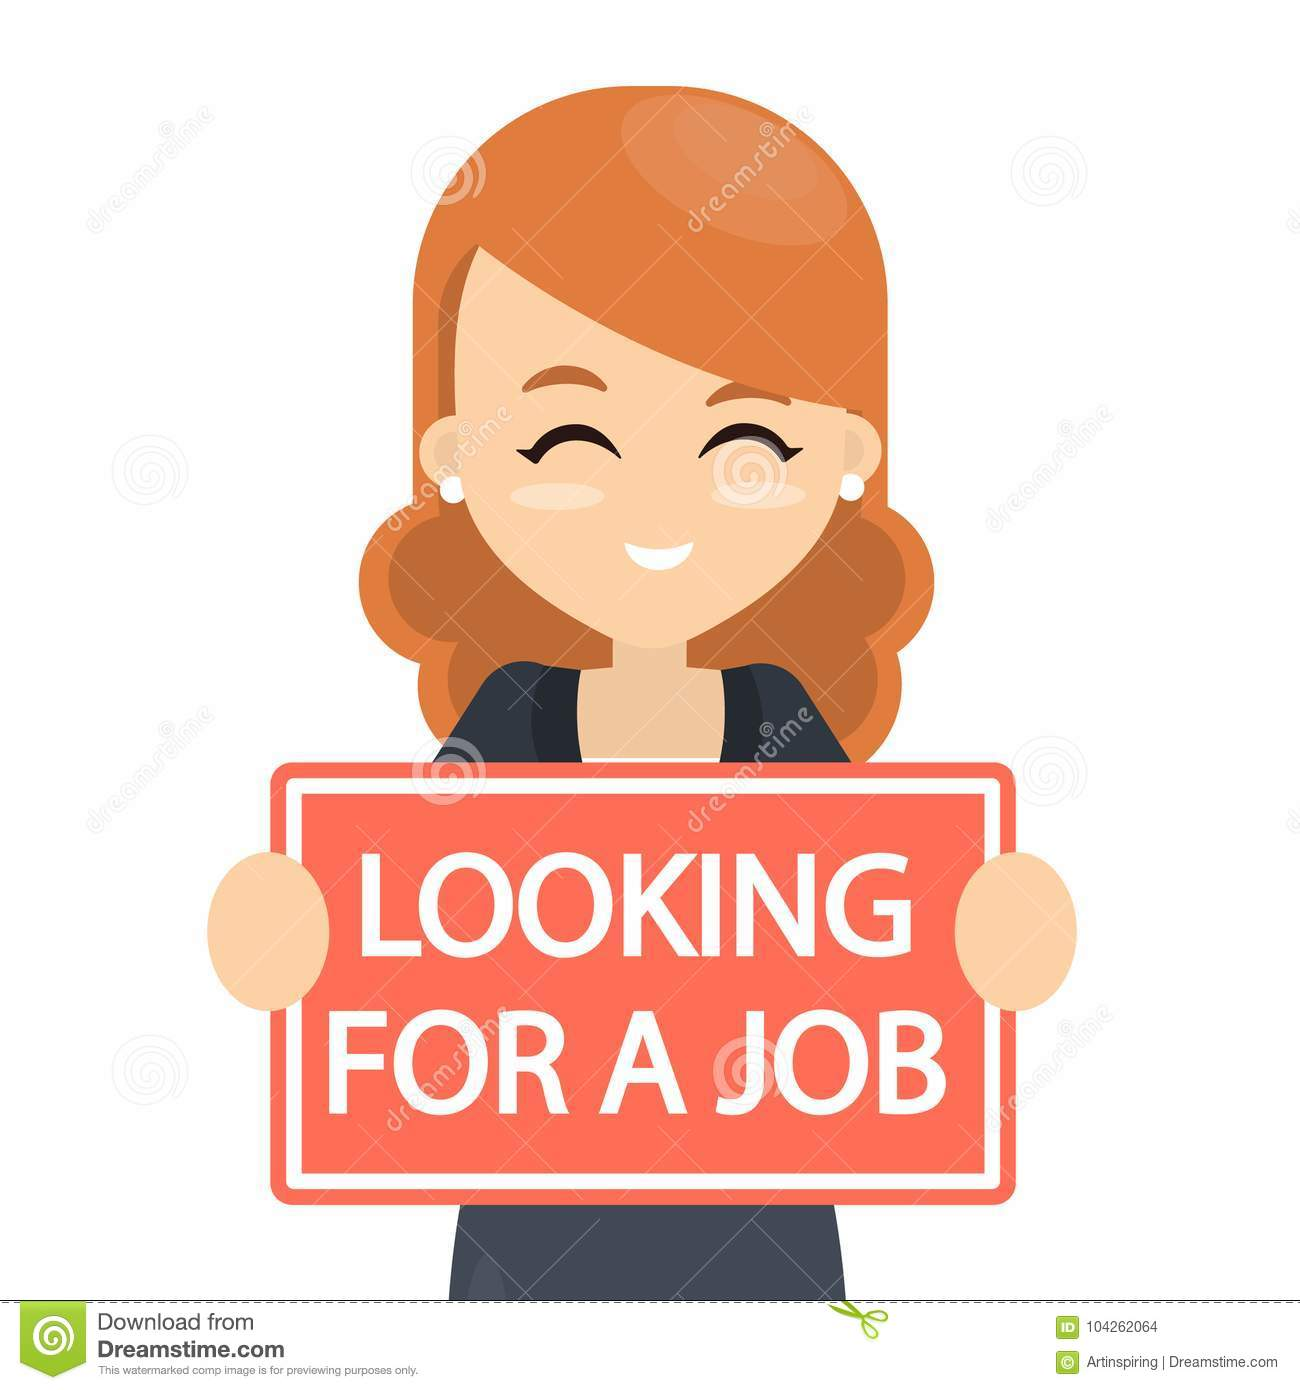 Looking For A Job Stock Vector Illustration Of Illustration